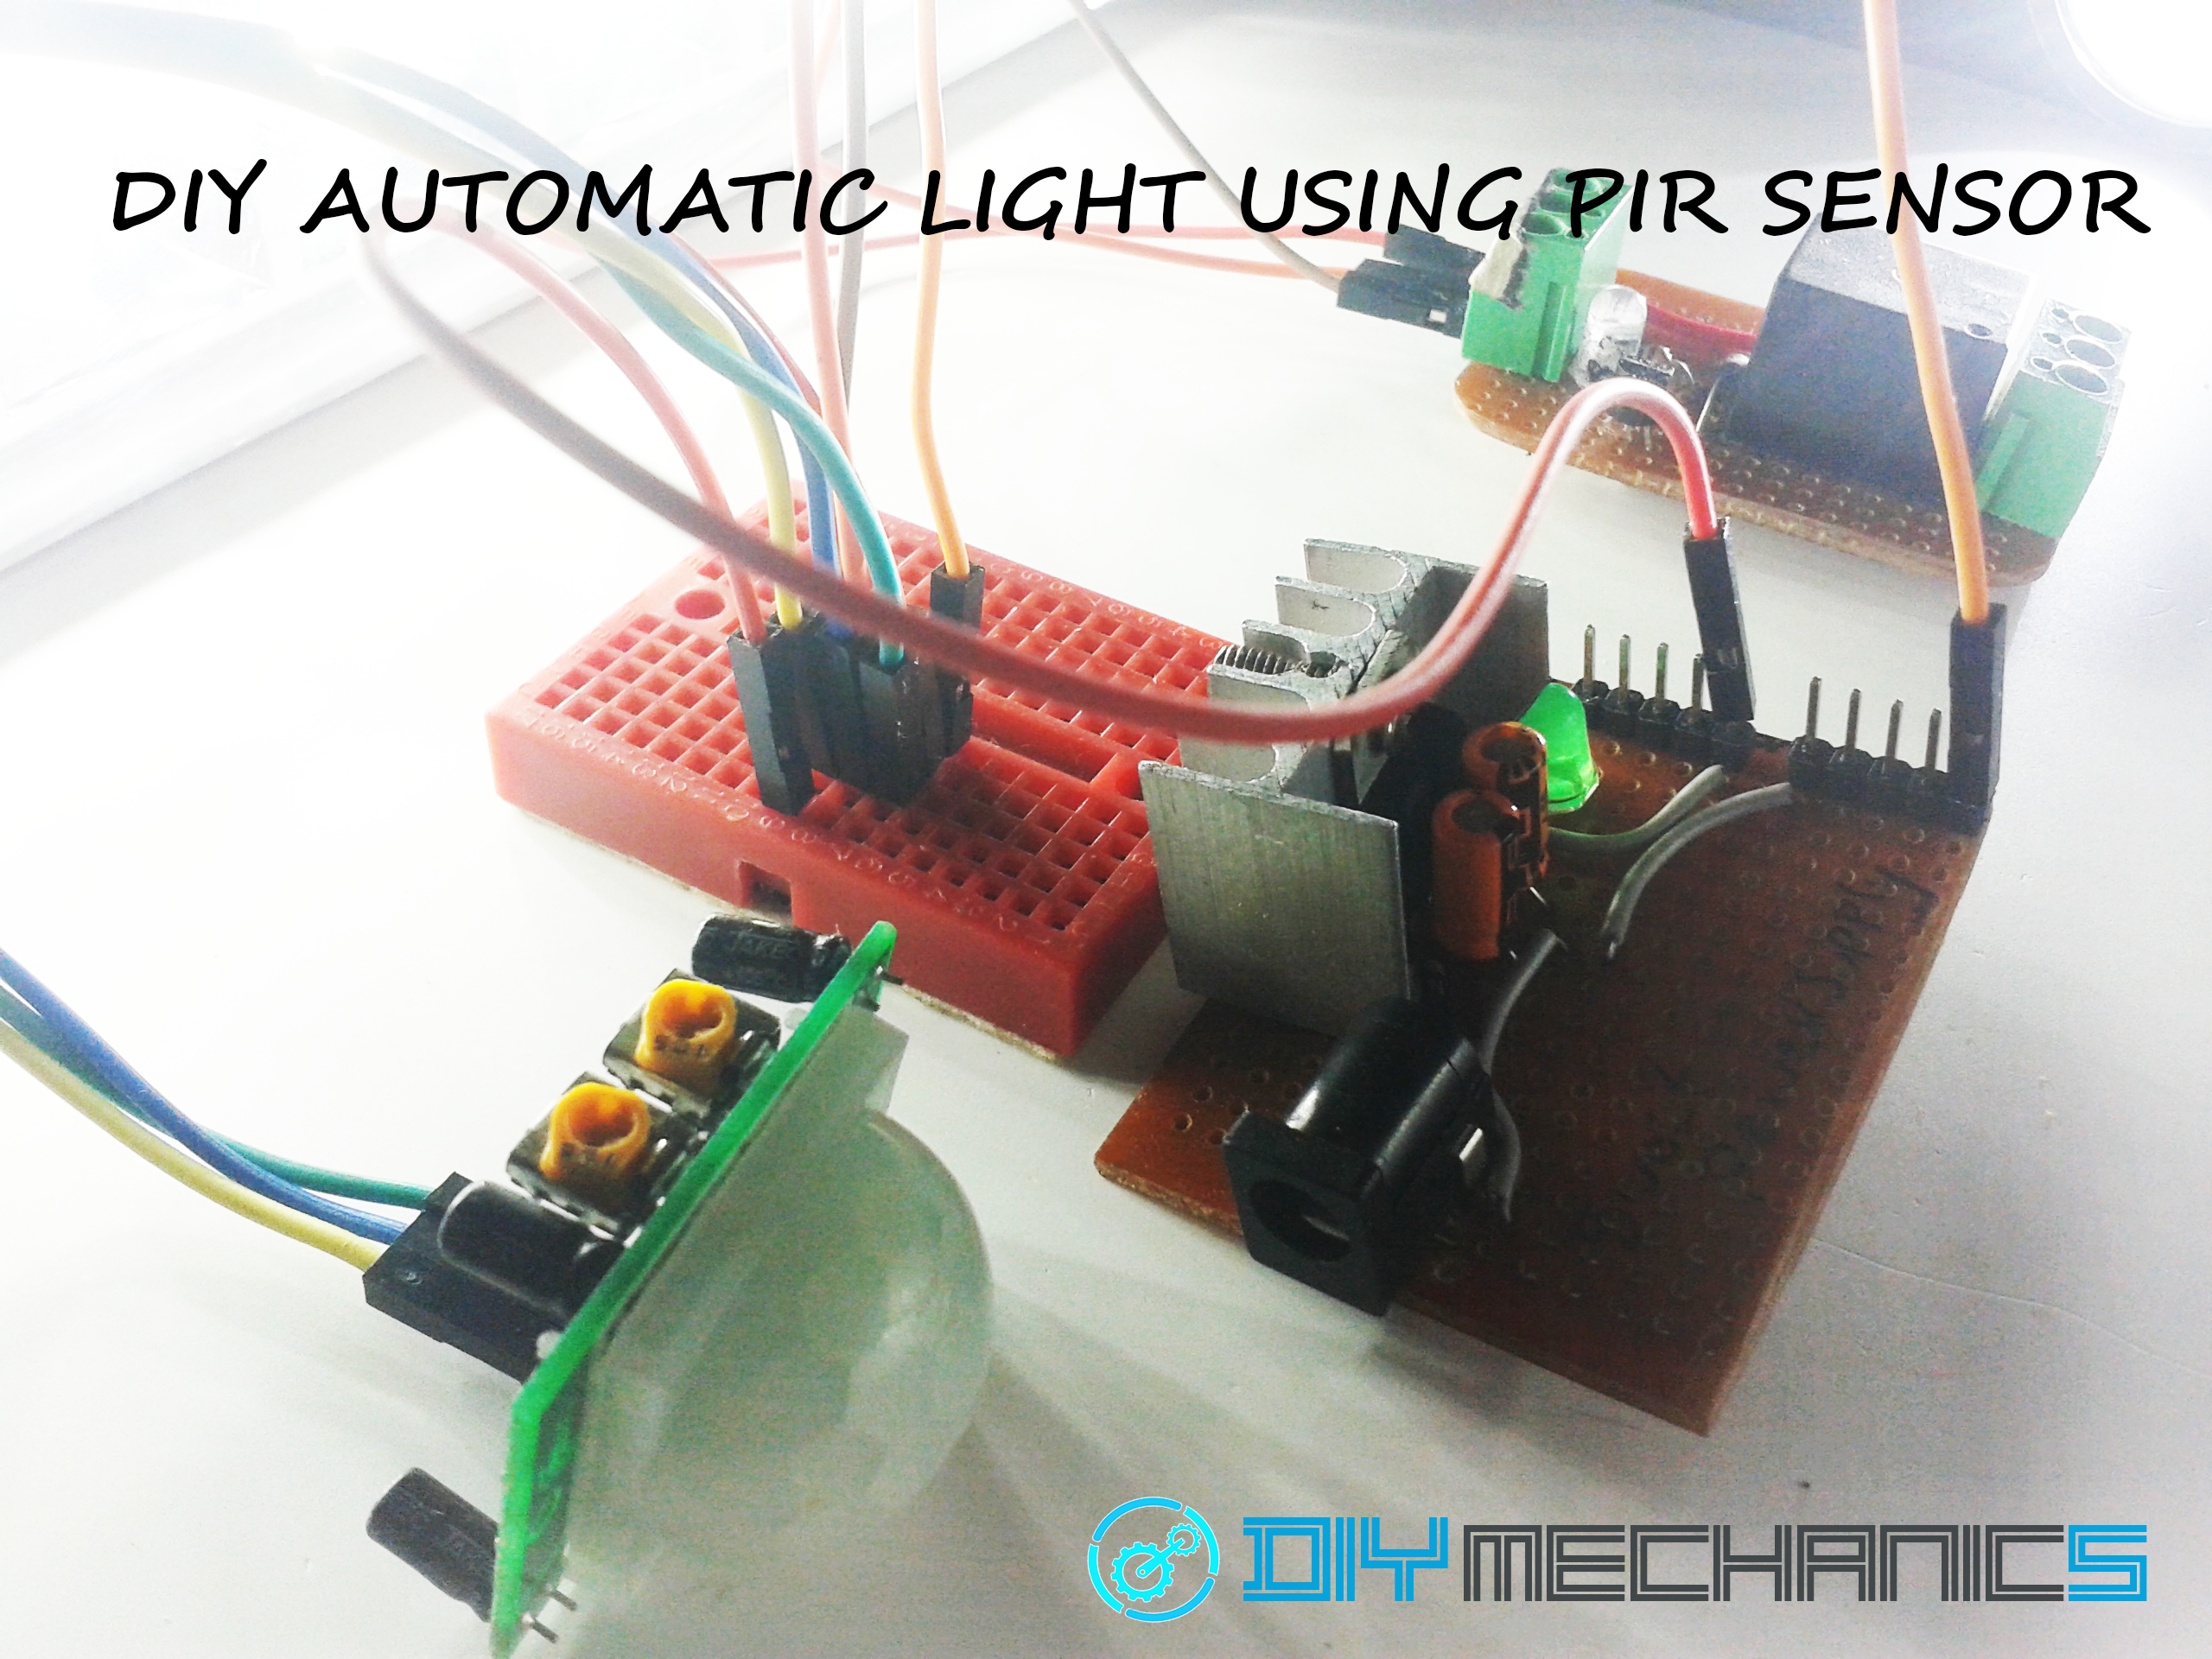 DIY SIMPLE AUTOMATIC LIGHT USING PIR MOTION SENSOR.